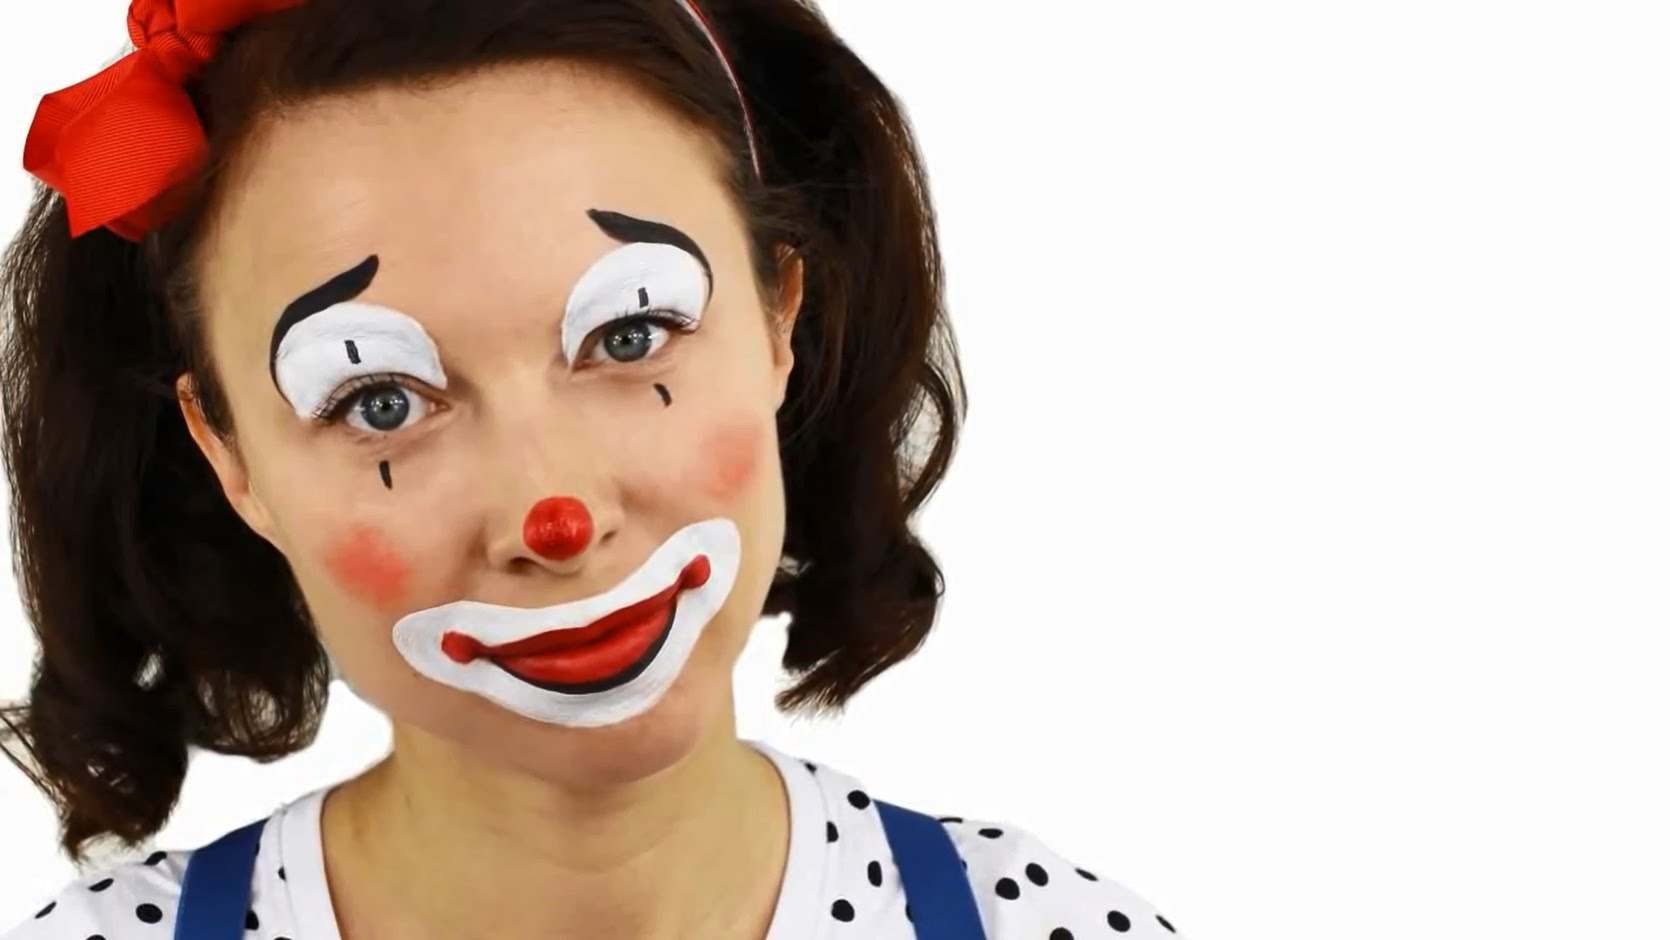 maquillage de clown fille